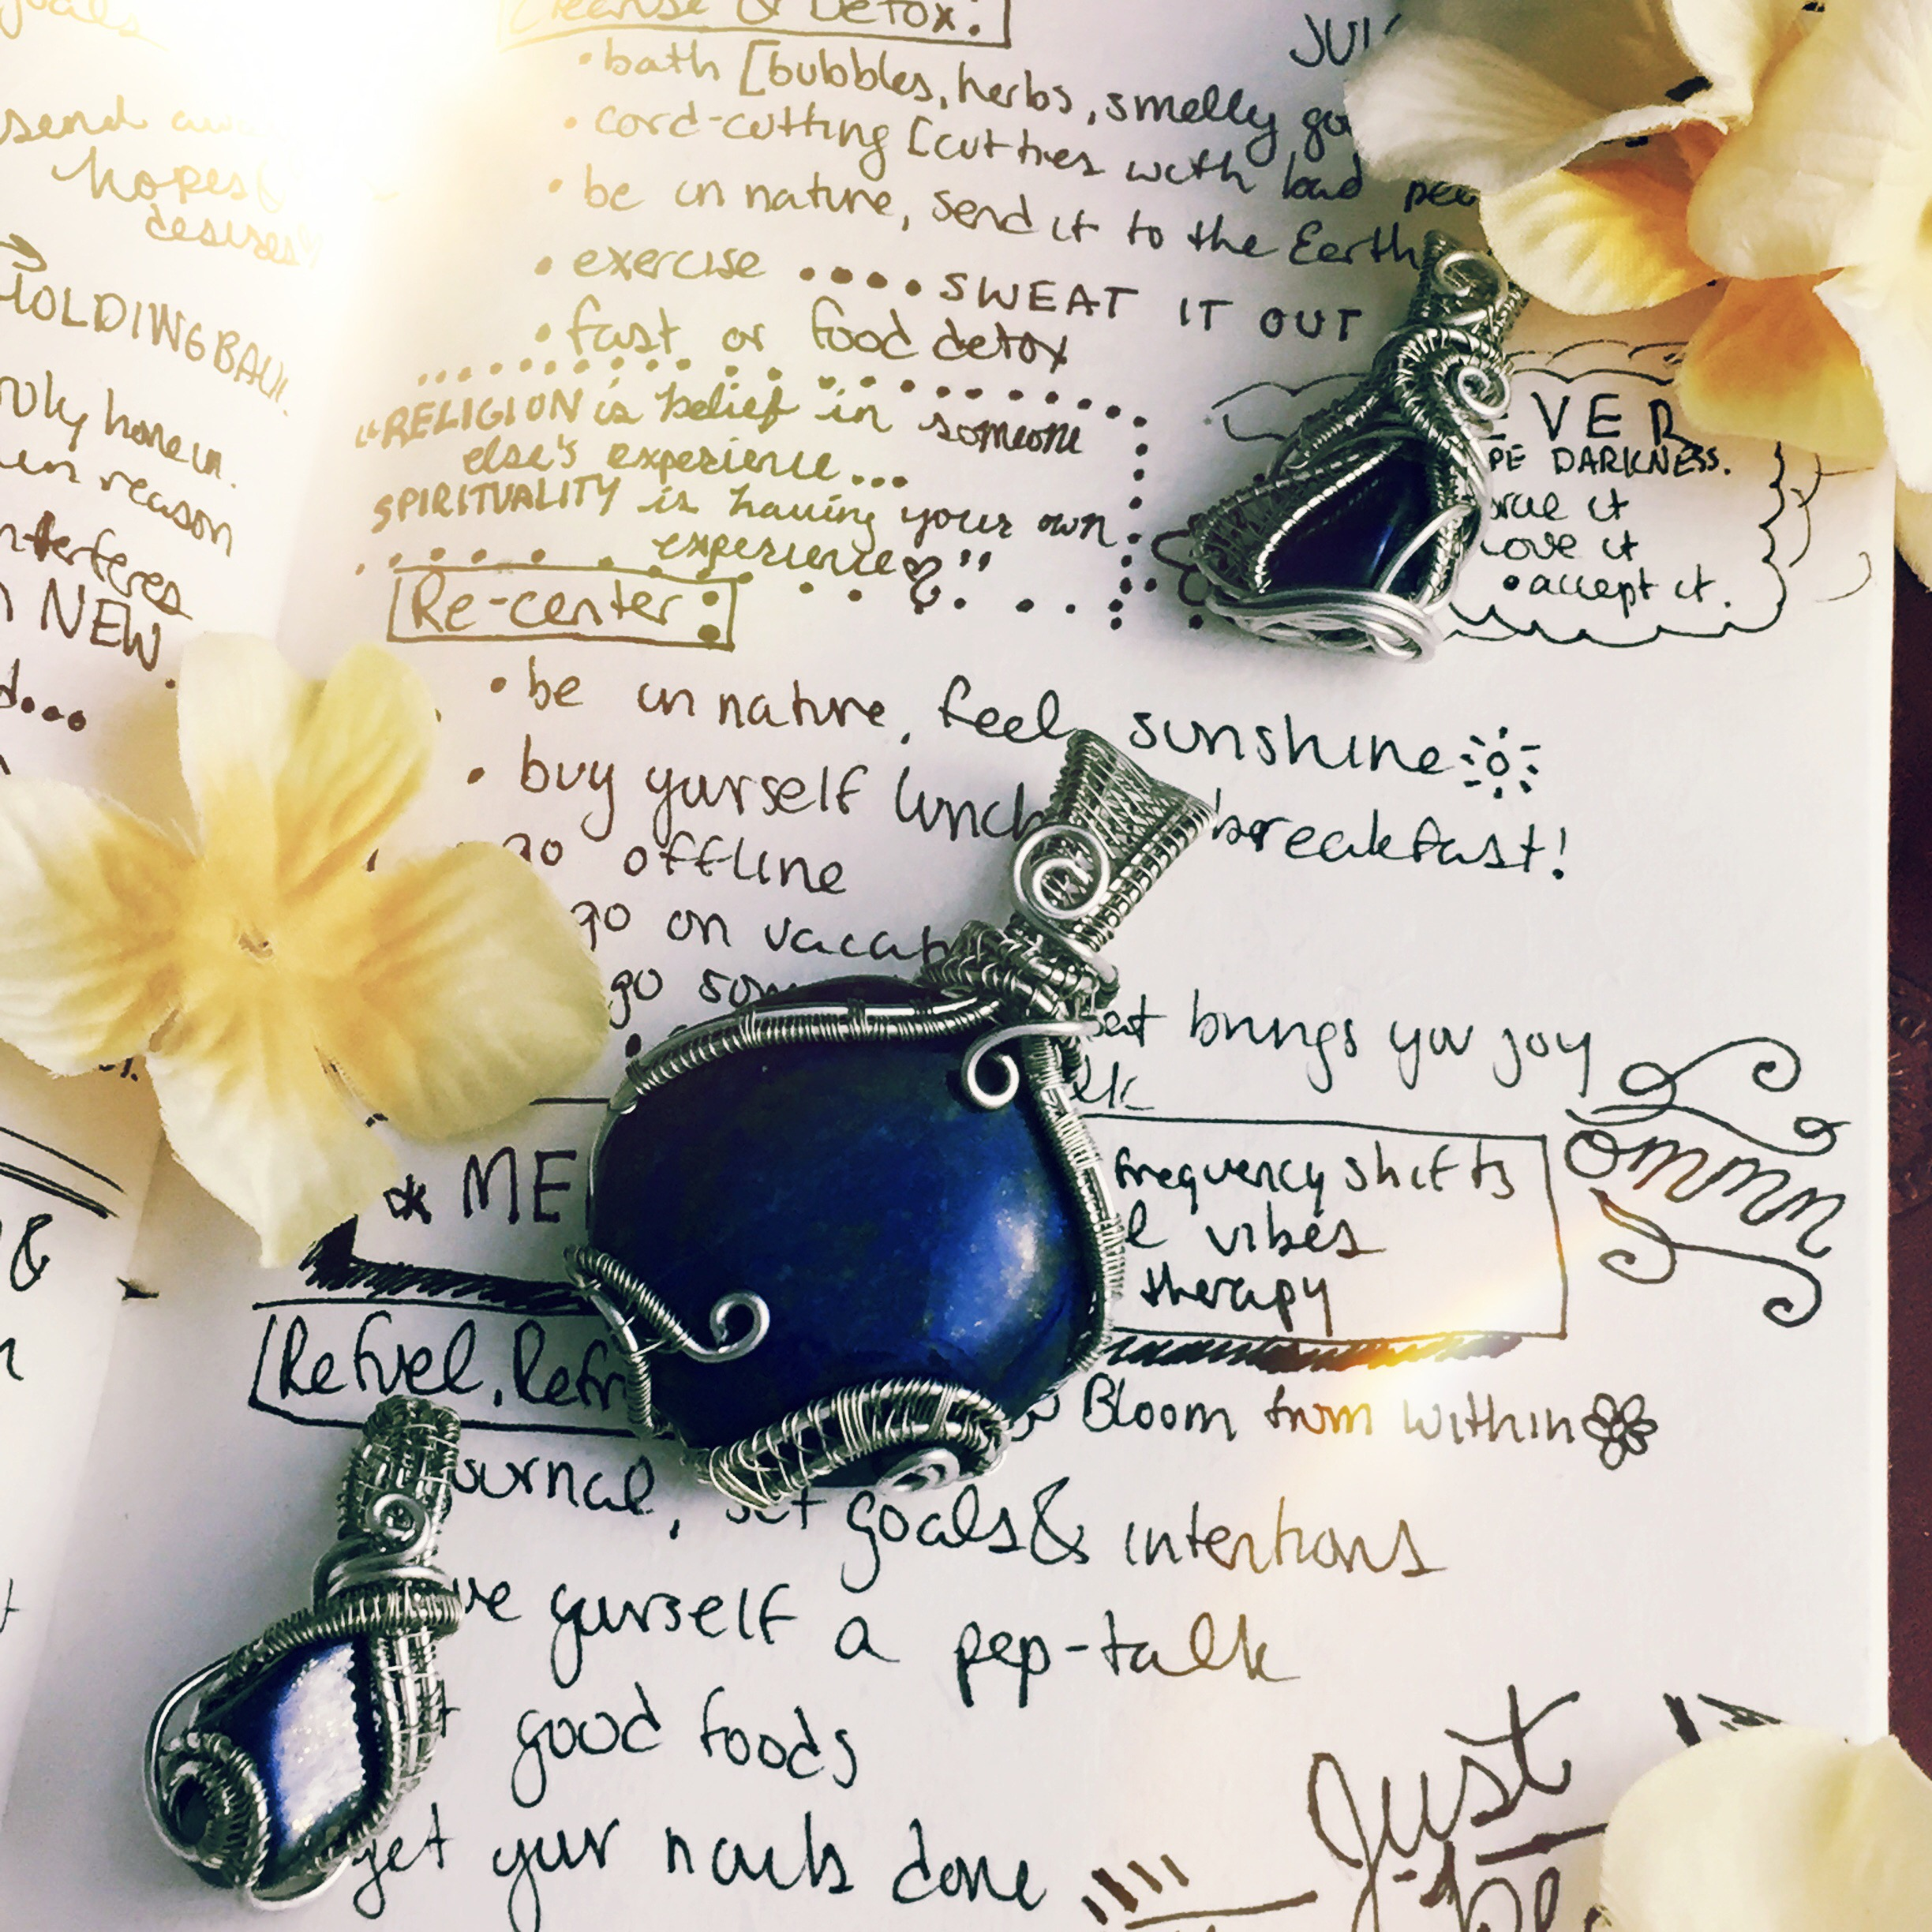 And Zen Some has some amazing Lapis pendants for your energy, Sag! Check it out here.